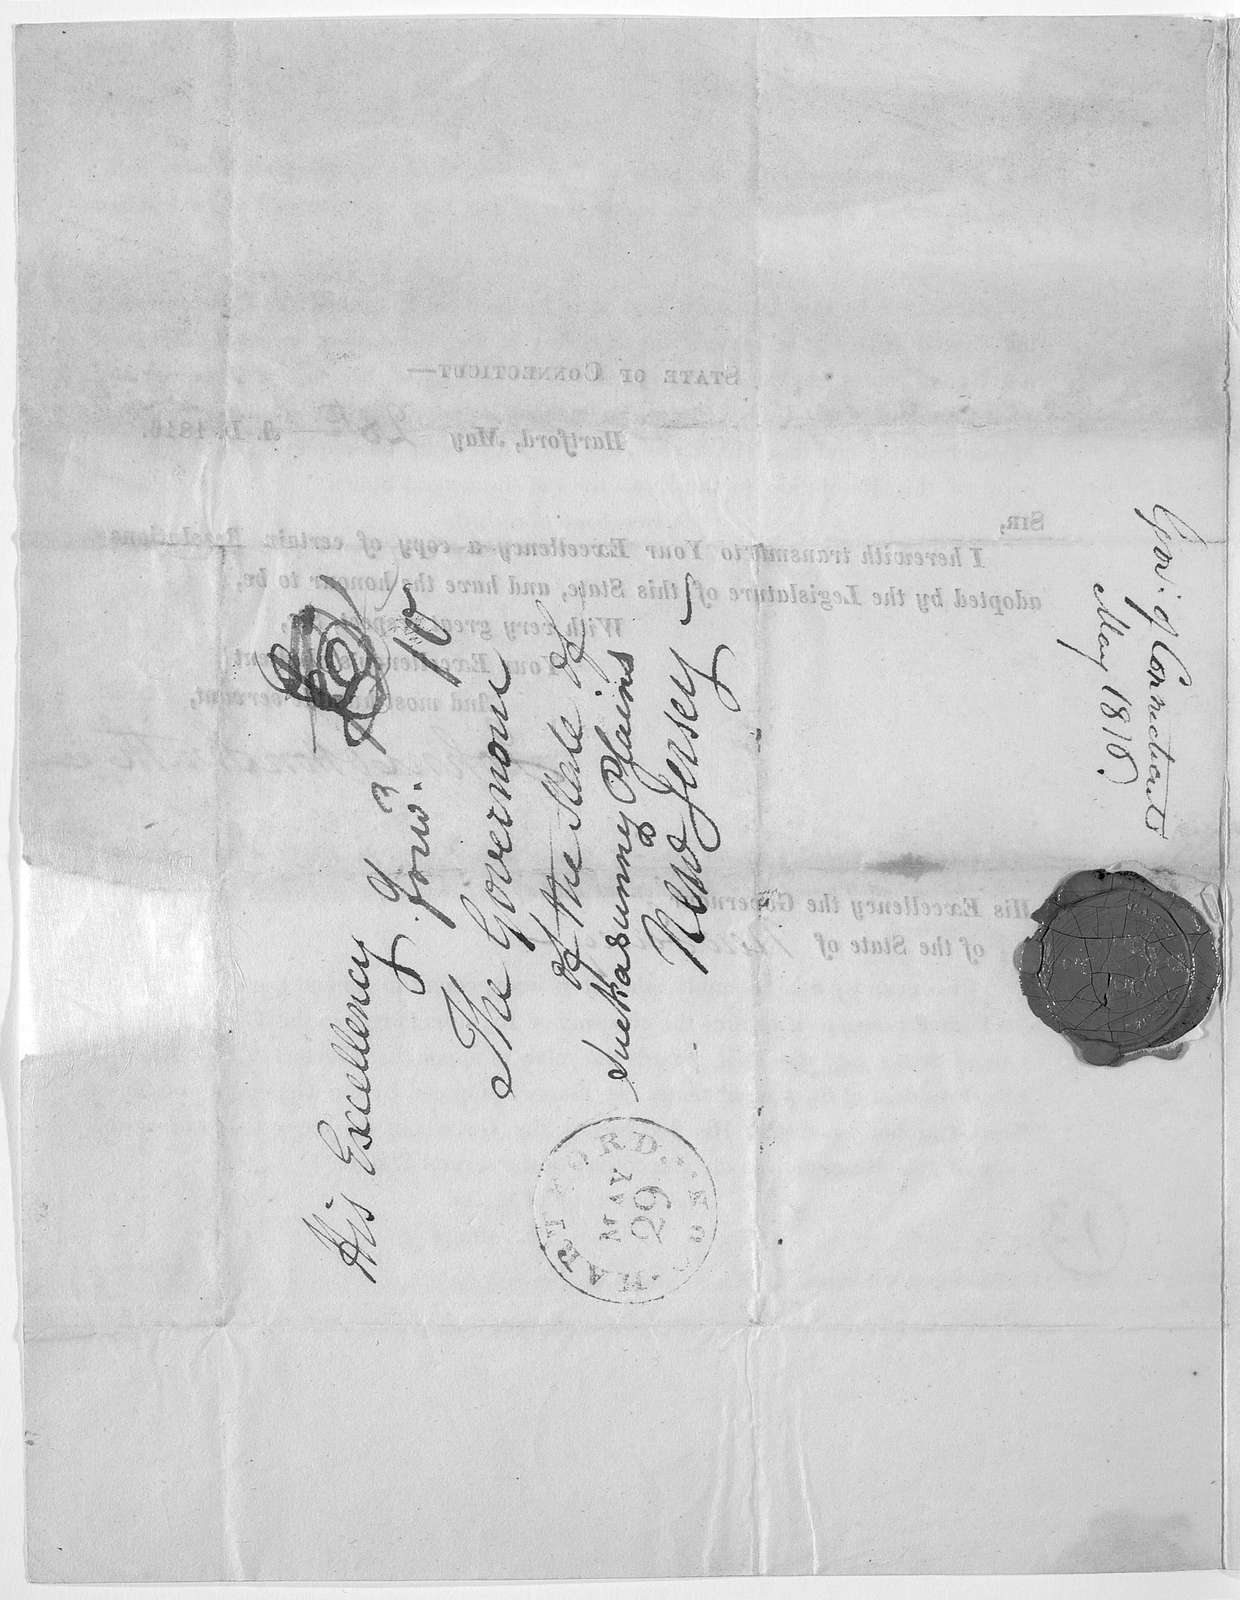 State of Connecticut. Hartford May [28th] A. D. 1816. Sir. I herewith transmit to your Excellency a copy of certain resolutions adopted by the Legislature of this state, and have the honour to be with very great respect Sir, Your excellency's ob